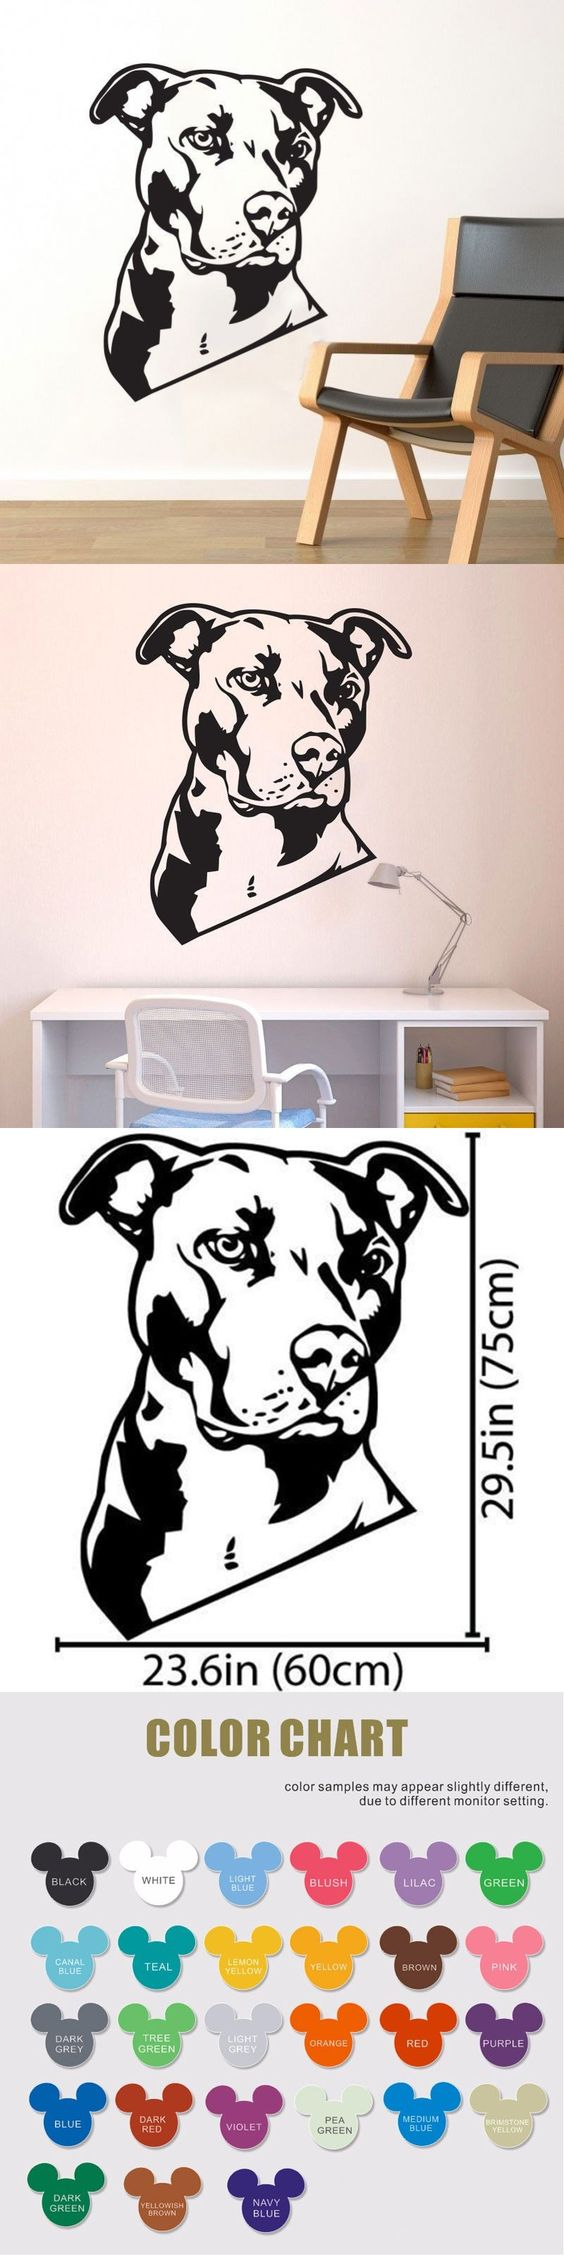 Bulldog Wall Decal Vinyl Sticker - Cute Dog Wallpaper Wall ArtDecor, Dalmatians Mural, Pet Shops, Home Decoration Mural Design $12.99